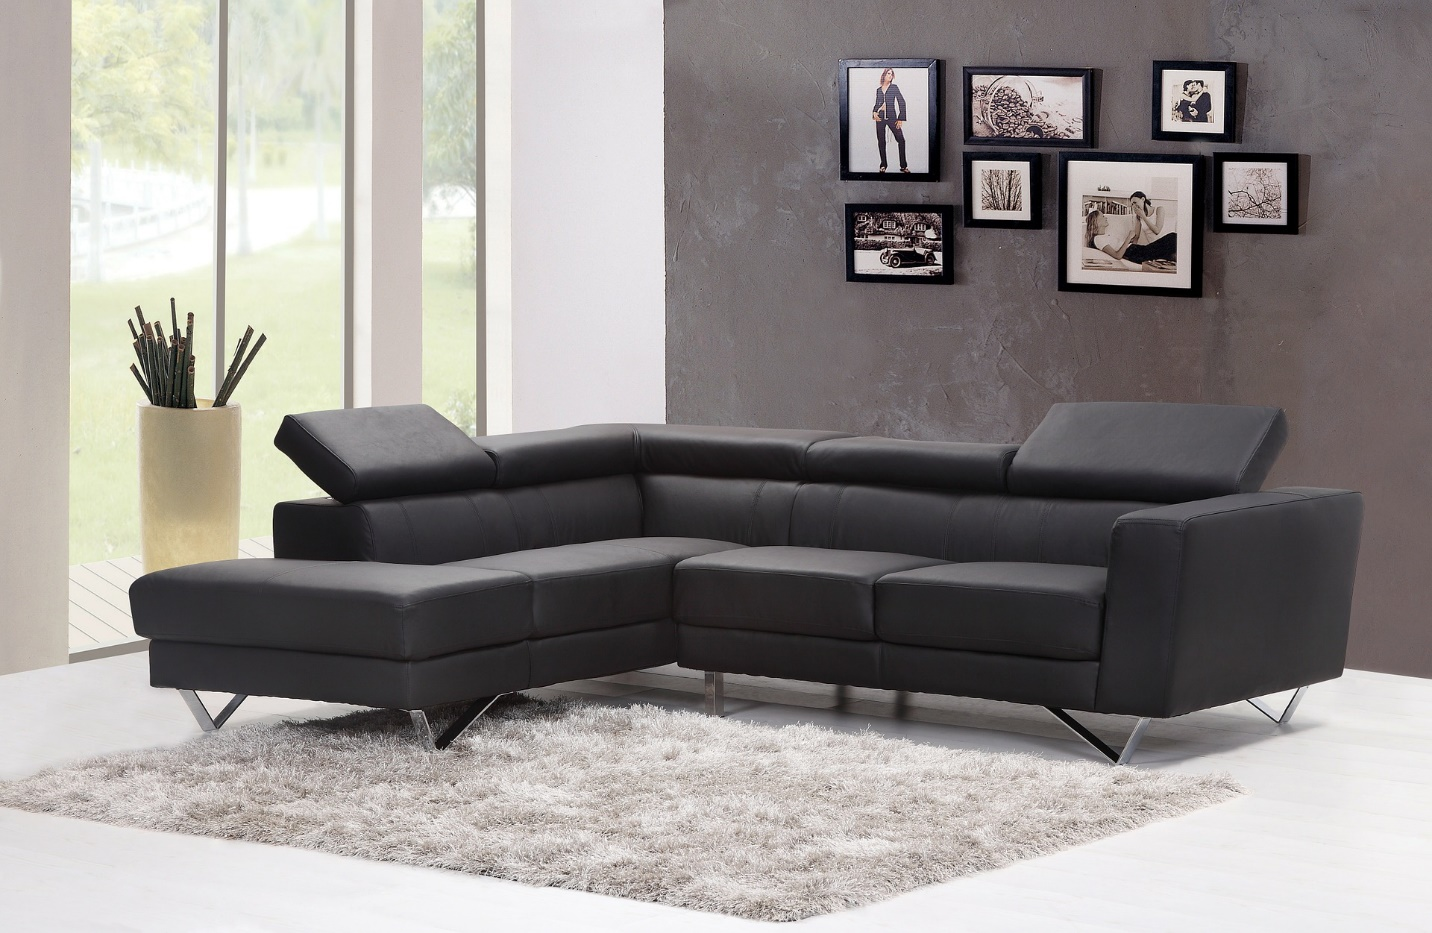 25 Types Of Sectional Sofa